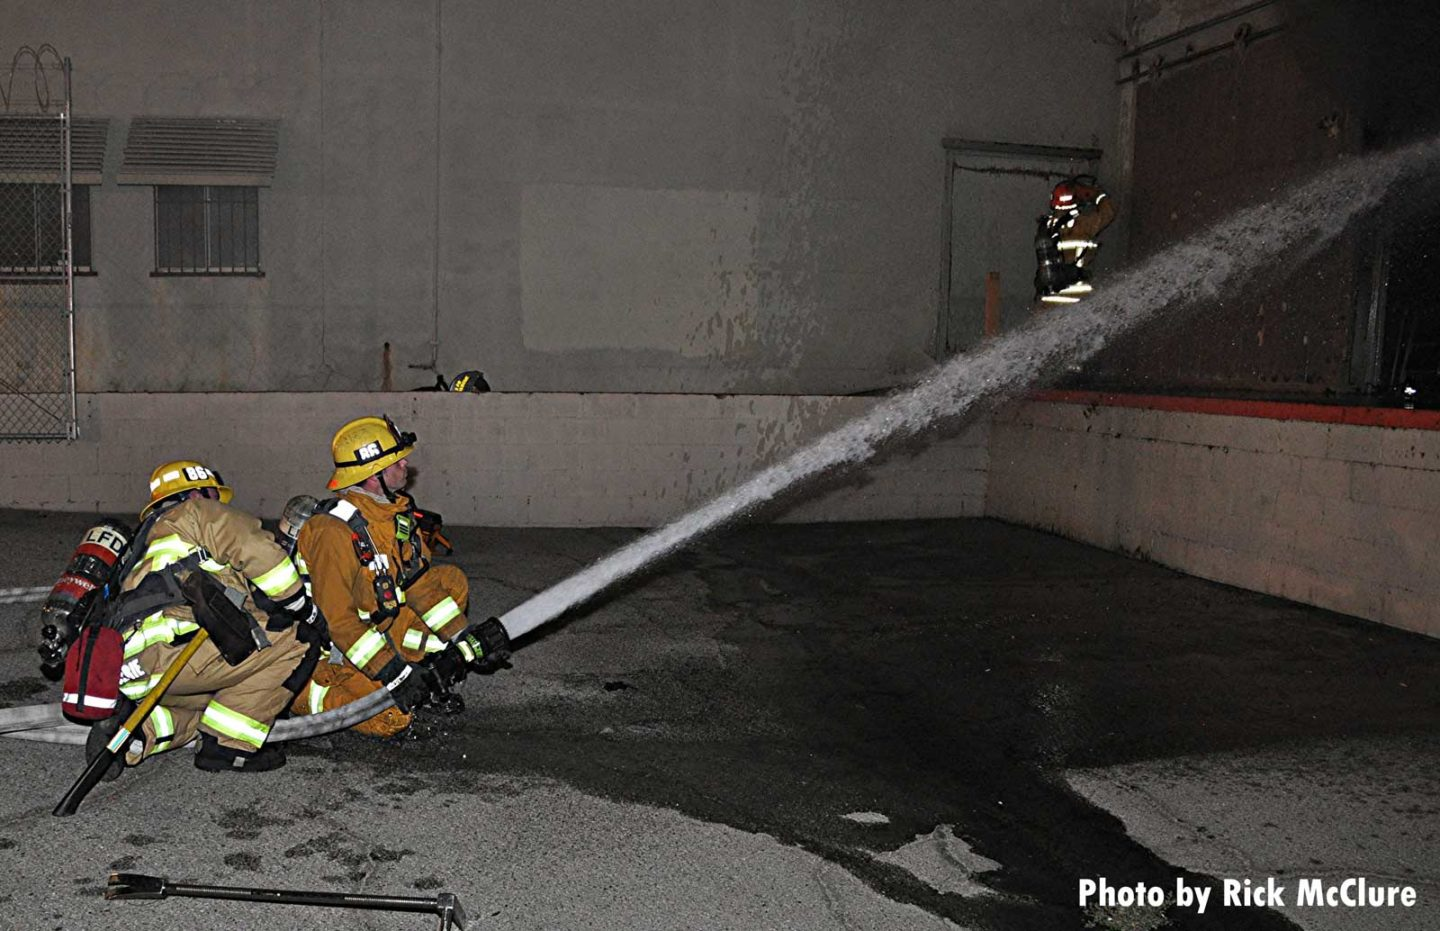 Two firefighters on a hoseline put water on the fire